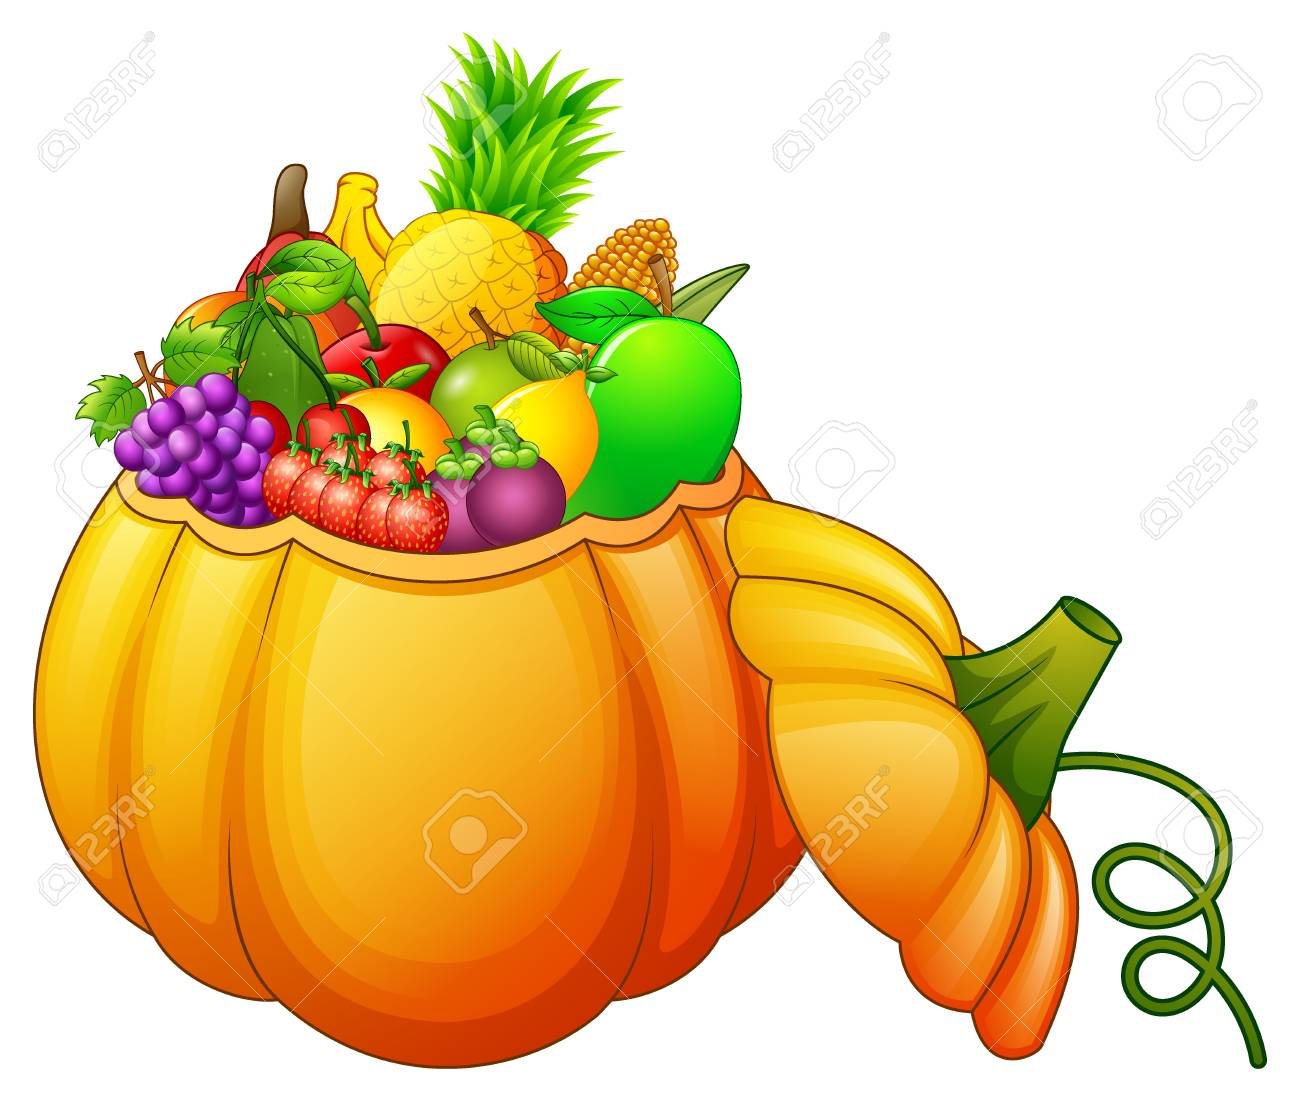 1300x1101 Pumpkin Basket Full Of Fruits And Vegetables Stock Photo, Picture